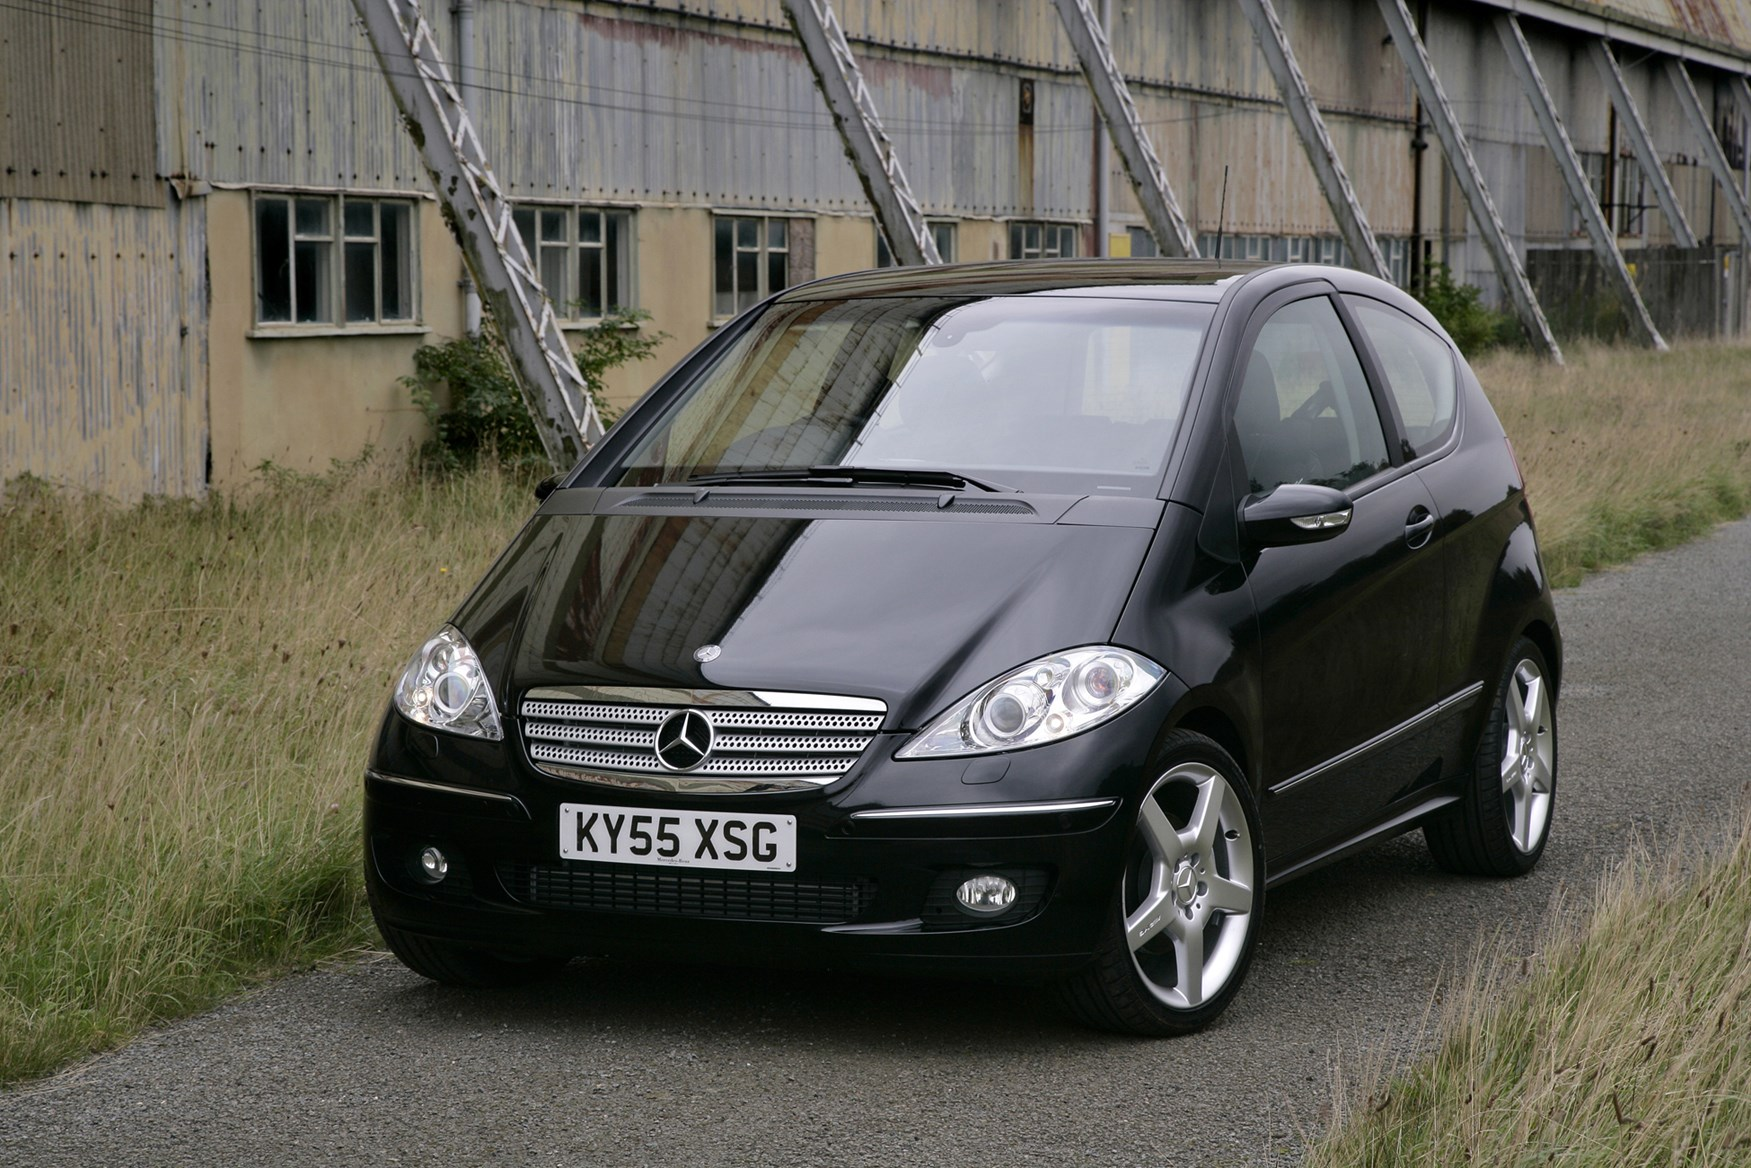 mercedes benz a class hatchback review 2005 2012 parkers. Black Bedroom Furniture Sets. Home Design Ideas